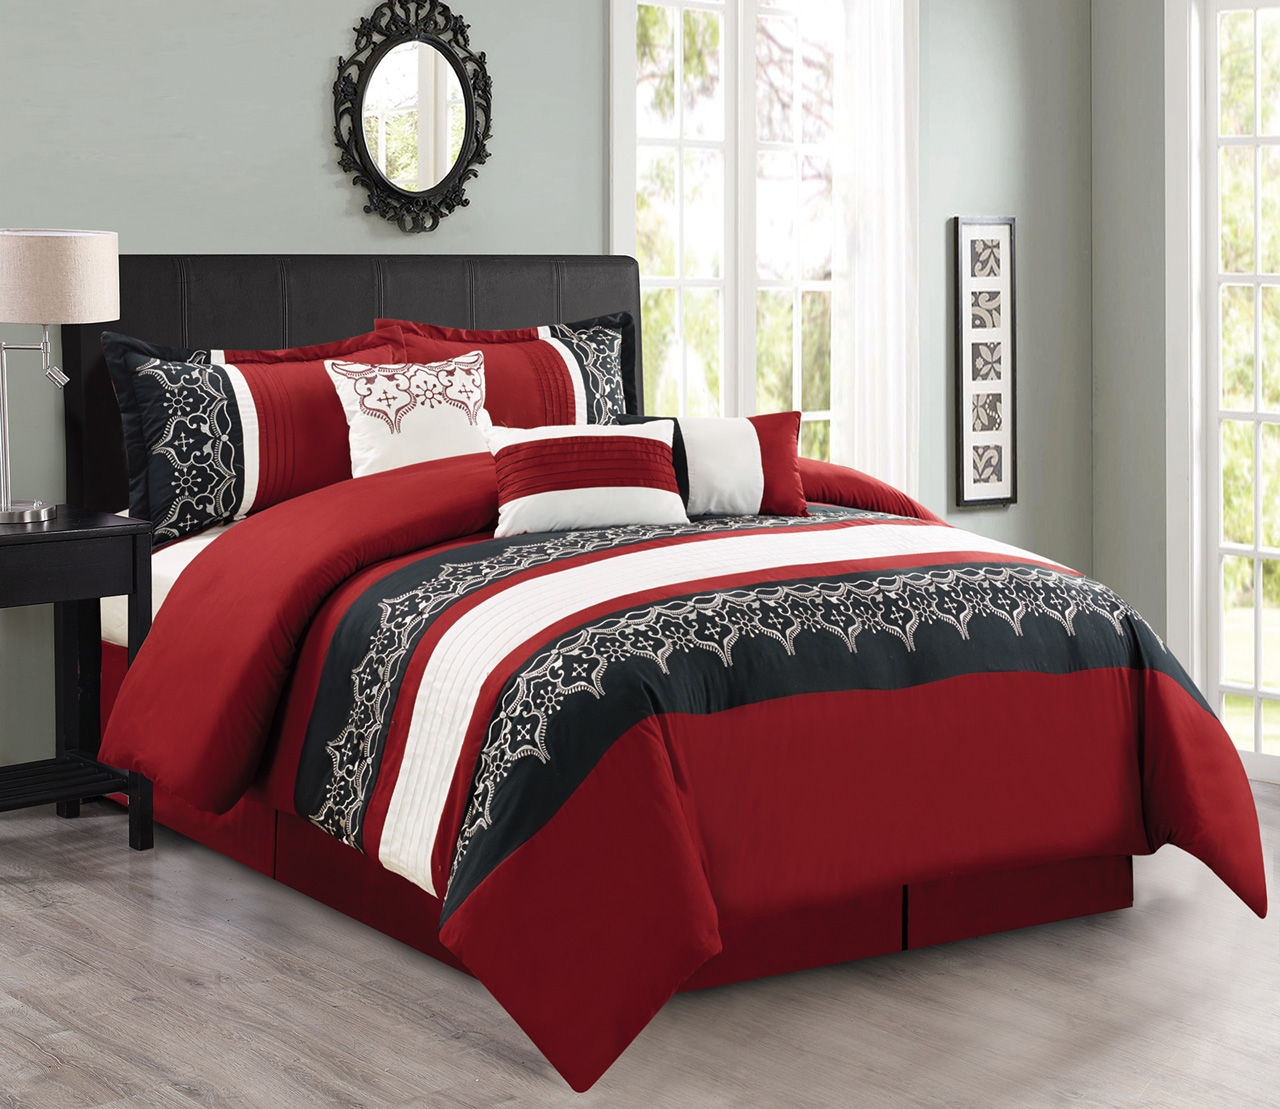 7 Piece Burgundy/Black/White Comforter Set on burgundy bedroom designs, burgundy kitchen decorating, french themed bedroom ideas for decorating, burgundy and cream bedrooms,